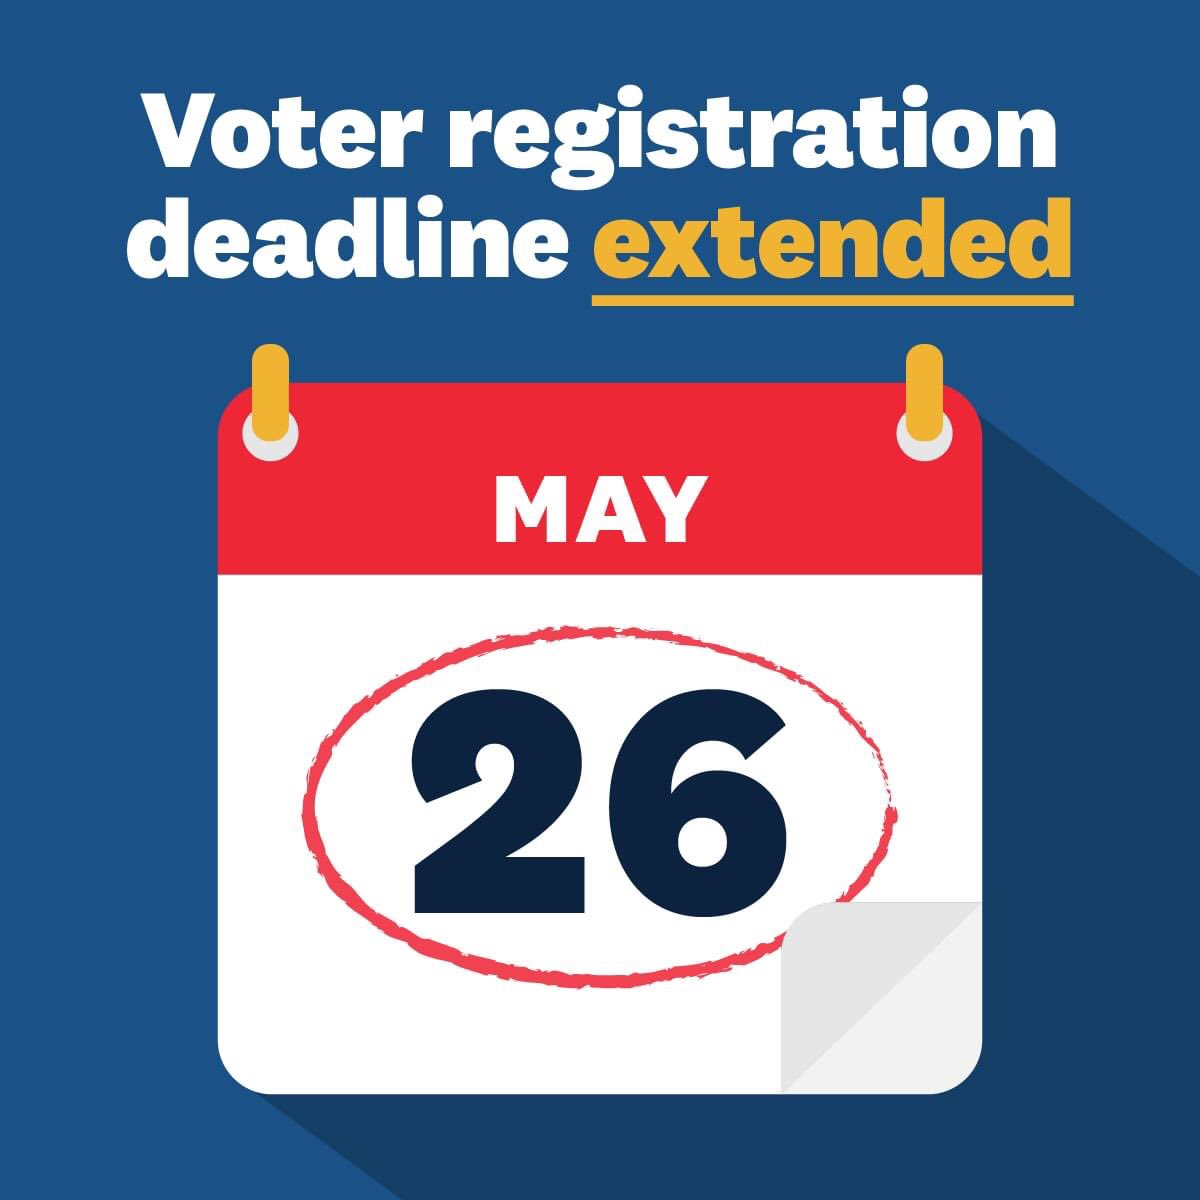 The deadline to register to vote is tomorrow at 4 PM local time. This is a great day to register to vote, as we remember those who fought and died to preserve this quintessential freedom. Visit